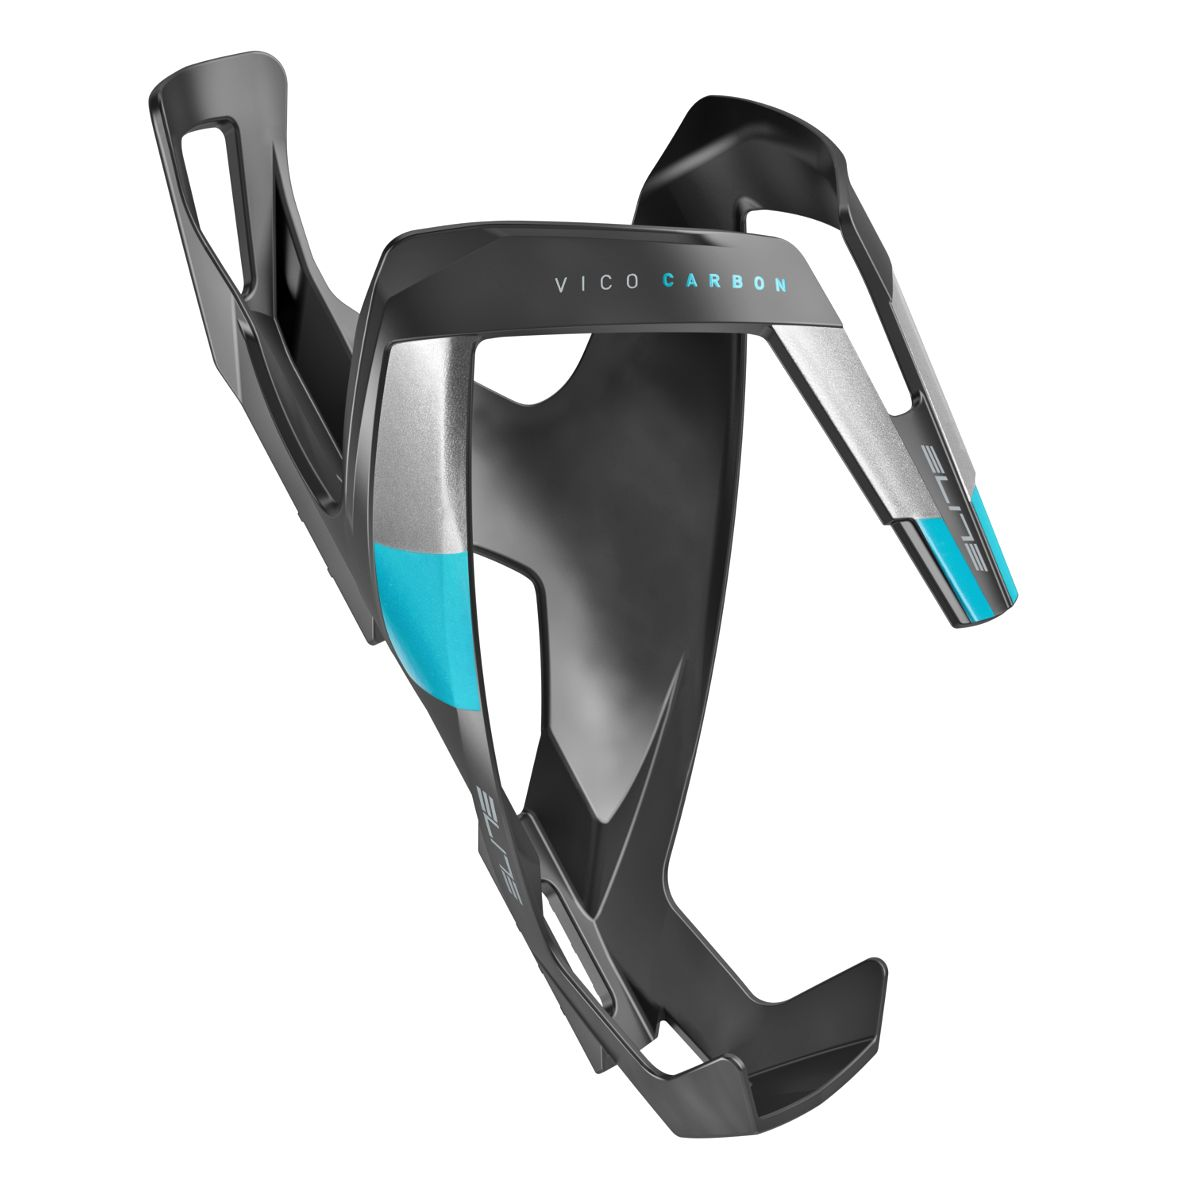 Vico Carbon bottle cage